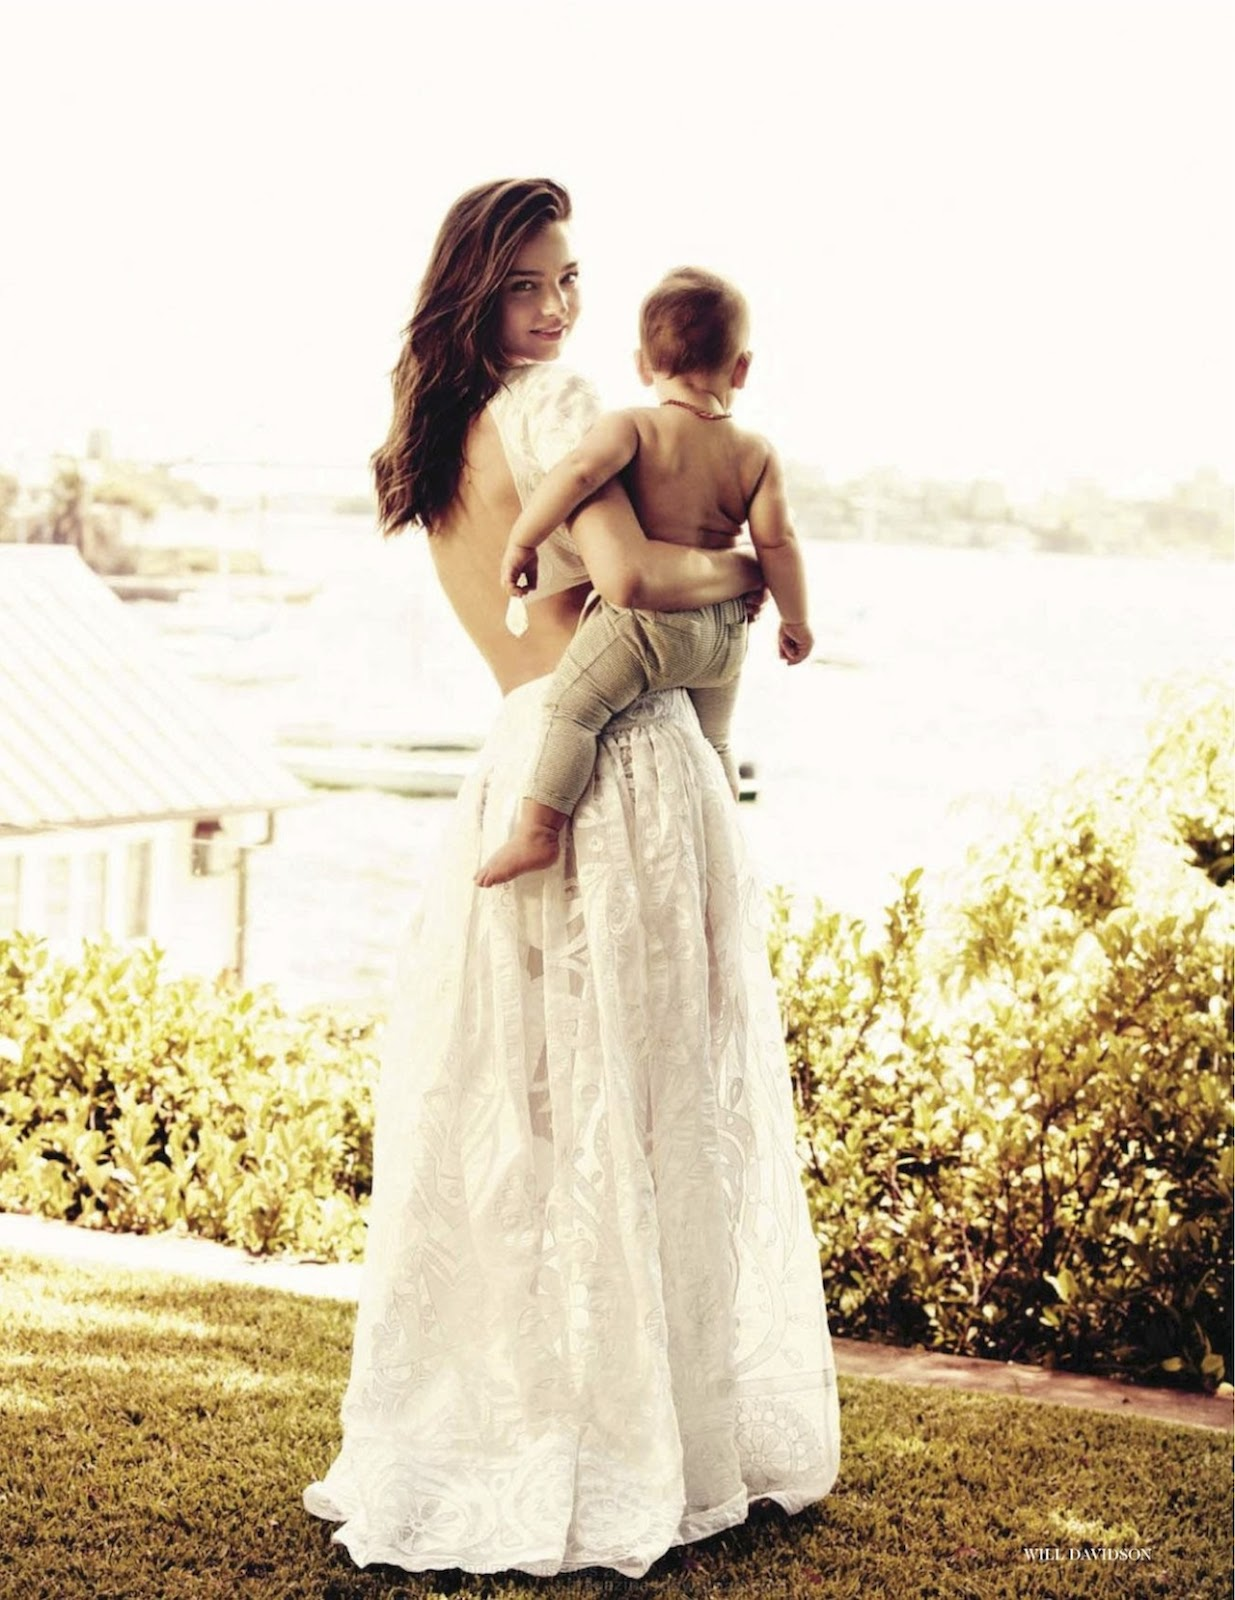 Miranda Kerr with Flynn in Vogue UK July 2012 (photography: Will Davidson) via fashioned by love  british fashion blog